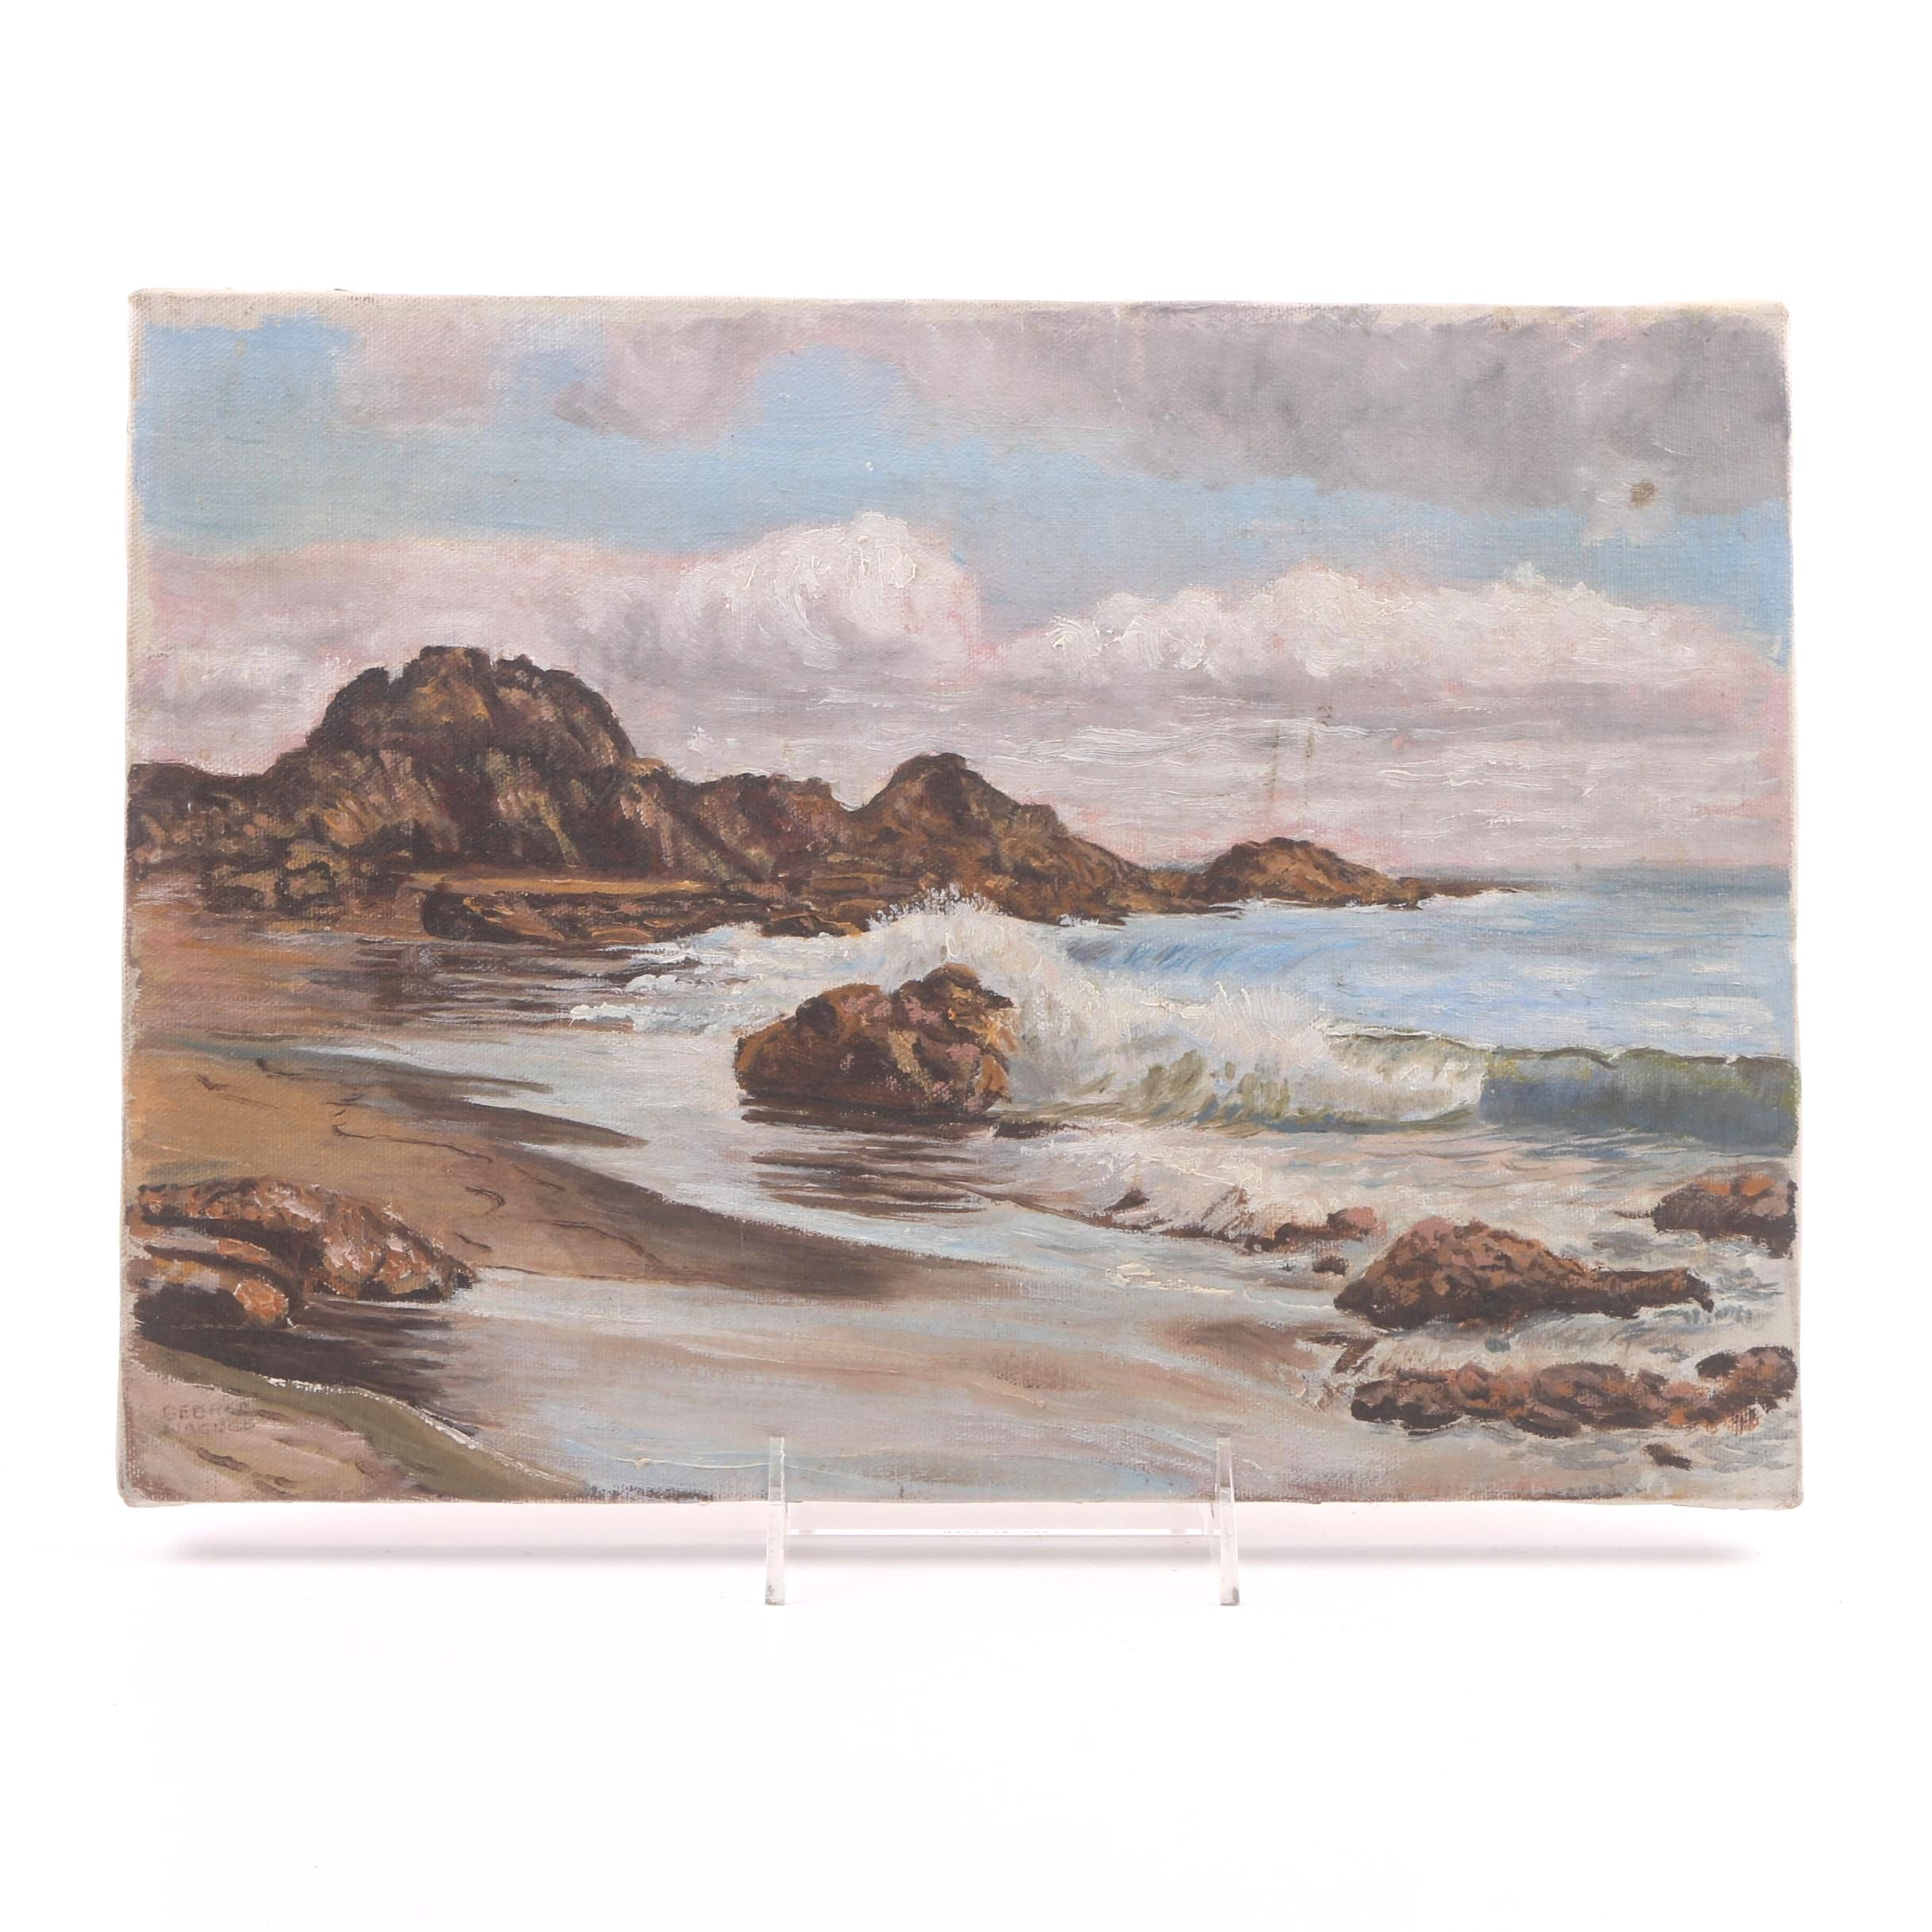 George Wagner Early 20th Century Oil Painting on Canvas of Rocky Seascape